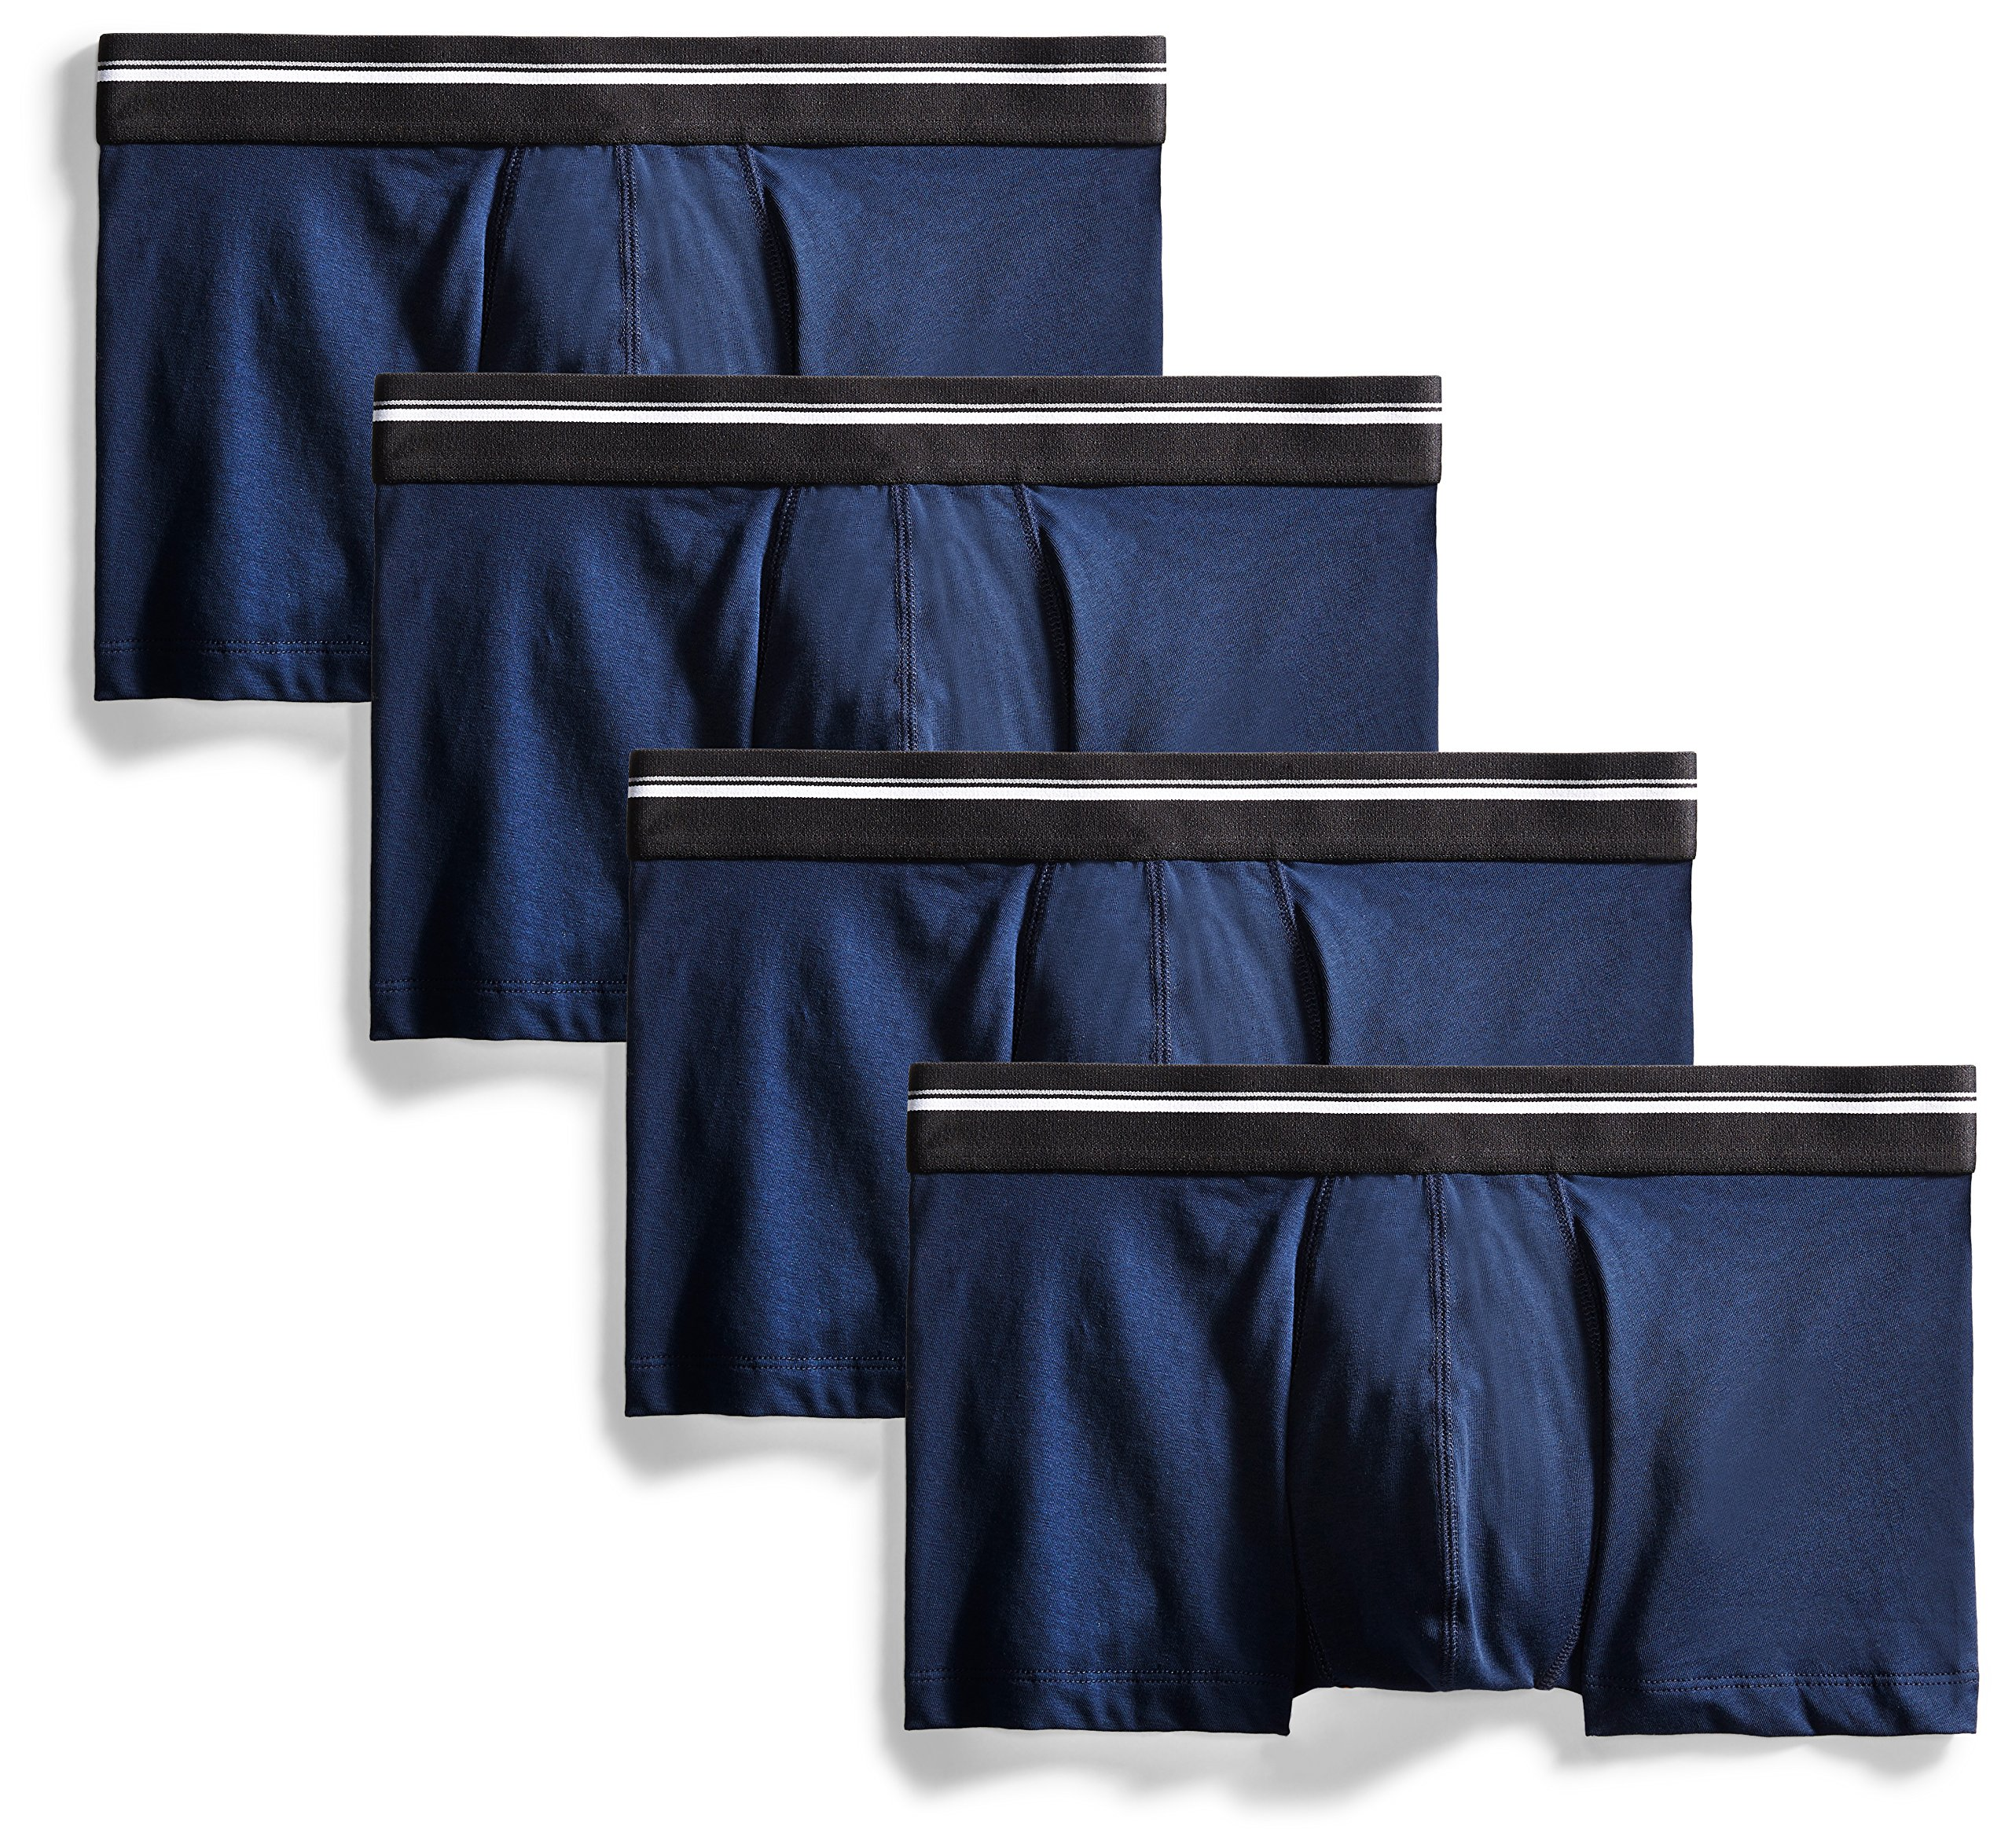 Goodthreads Men's 4-Pack Tag-Free Trunk Underwear, Navy, Medium by Goodthreads